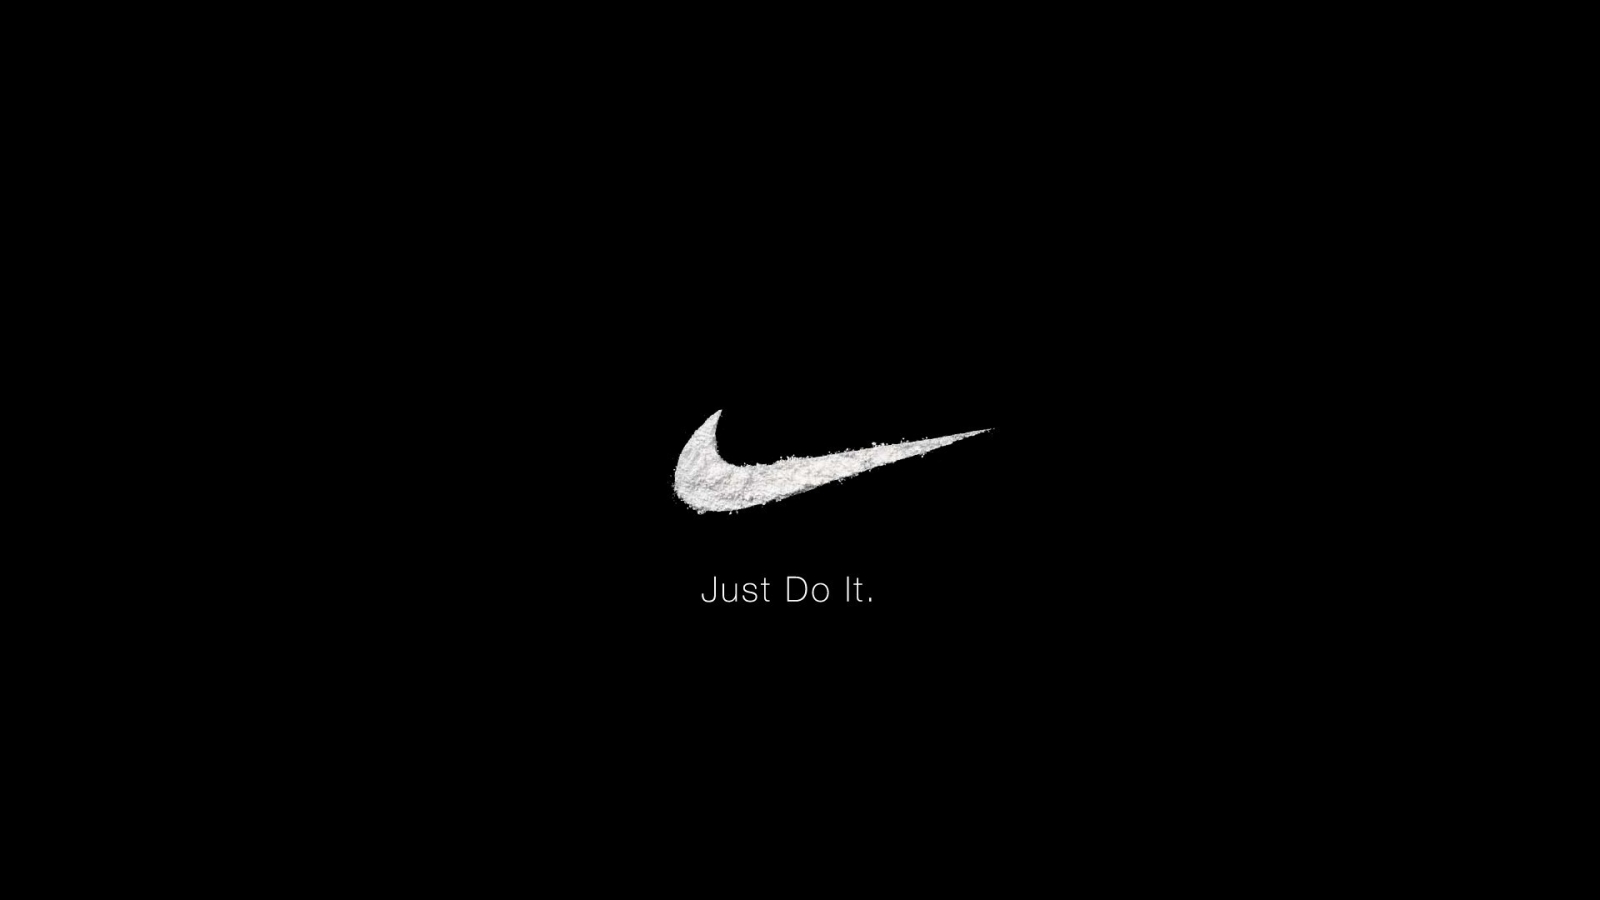 nike wallpaper hd 8144